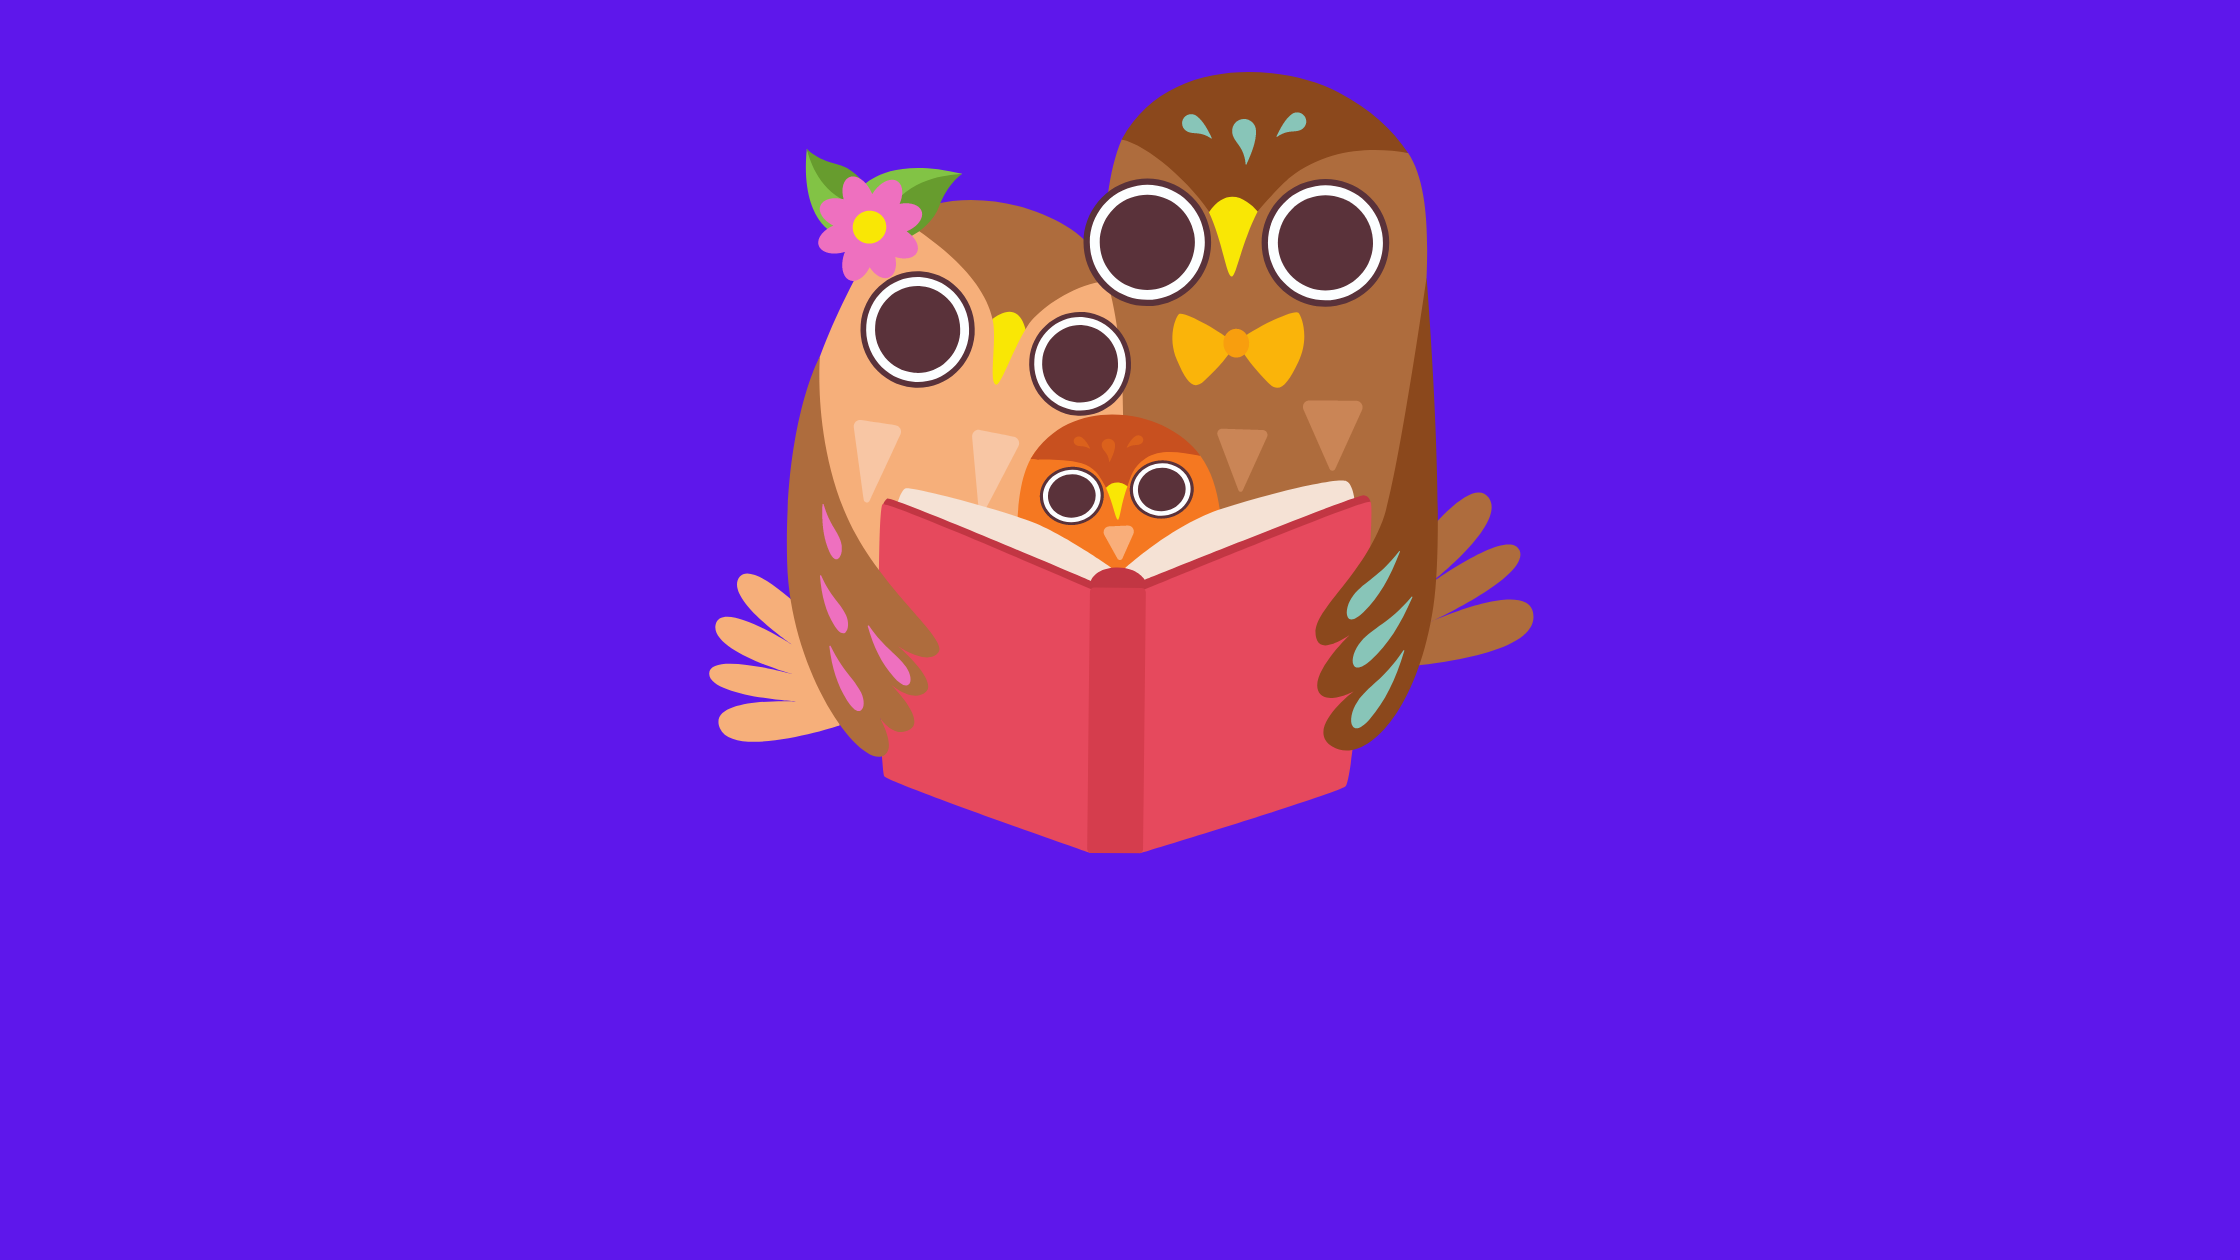 illustration of three owls (a family) reading